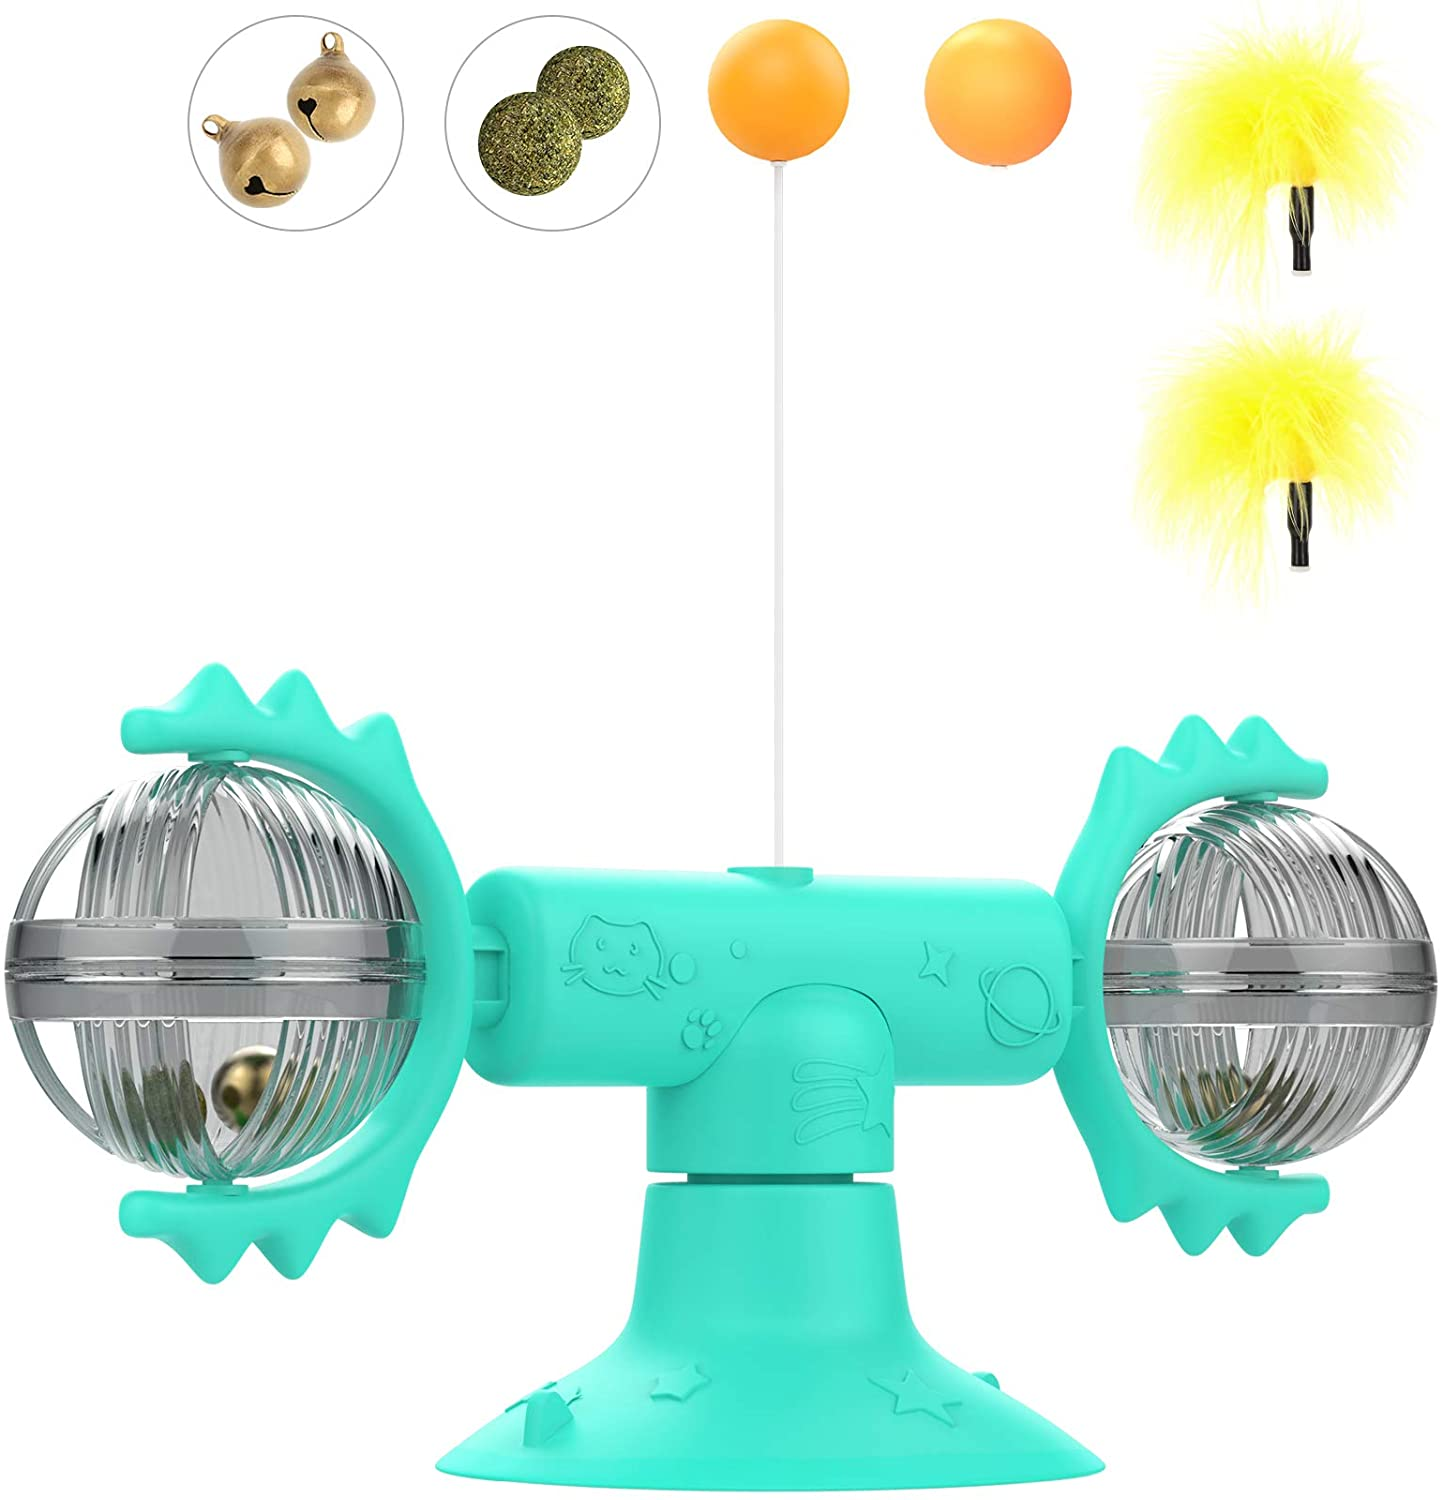 VavoPaw Rotating Windmill Toy & Balls/Teasing Feathers, Turntable Tickle Teasing Interactive Cat Toy with Suction Cup, Funny Kitten Toy Catnip Bells Toy, Lake Blue